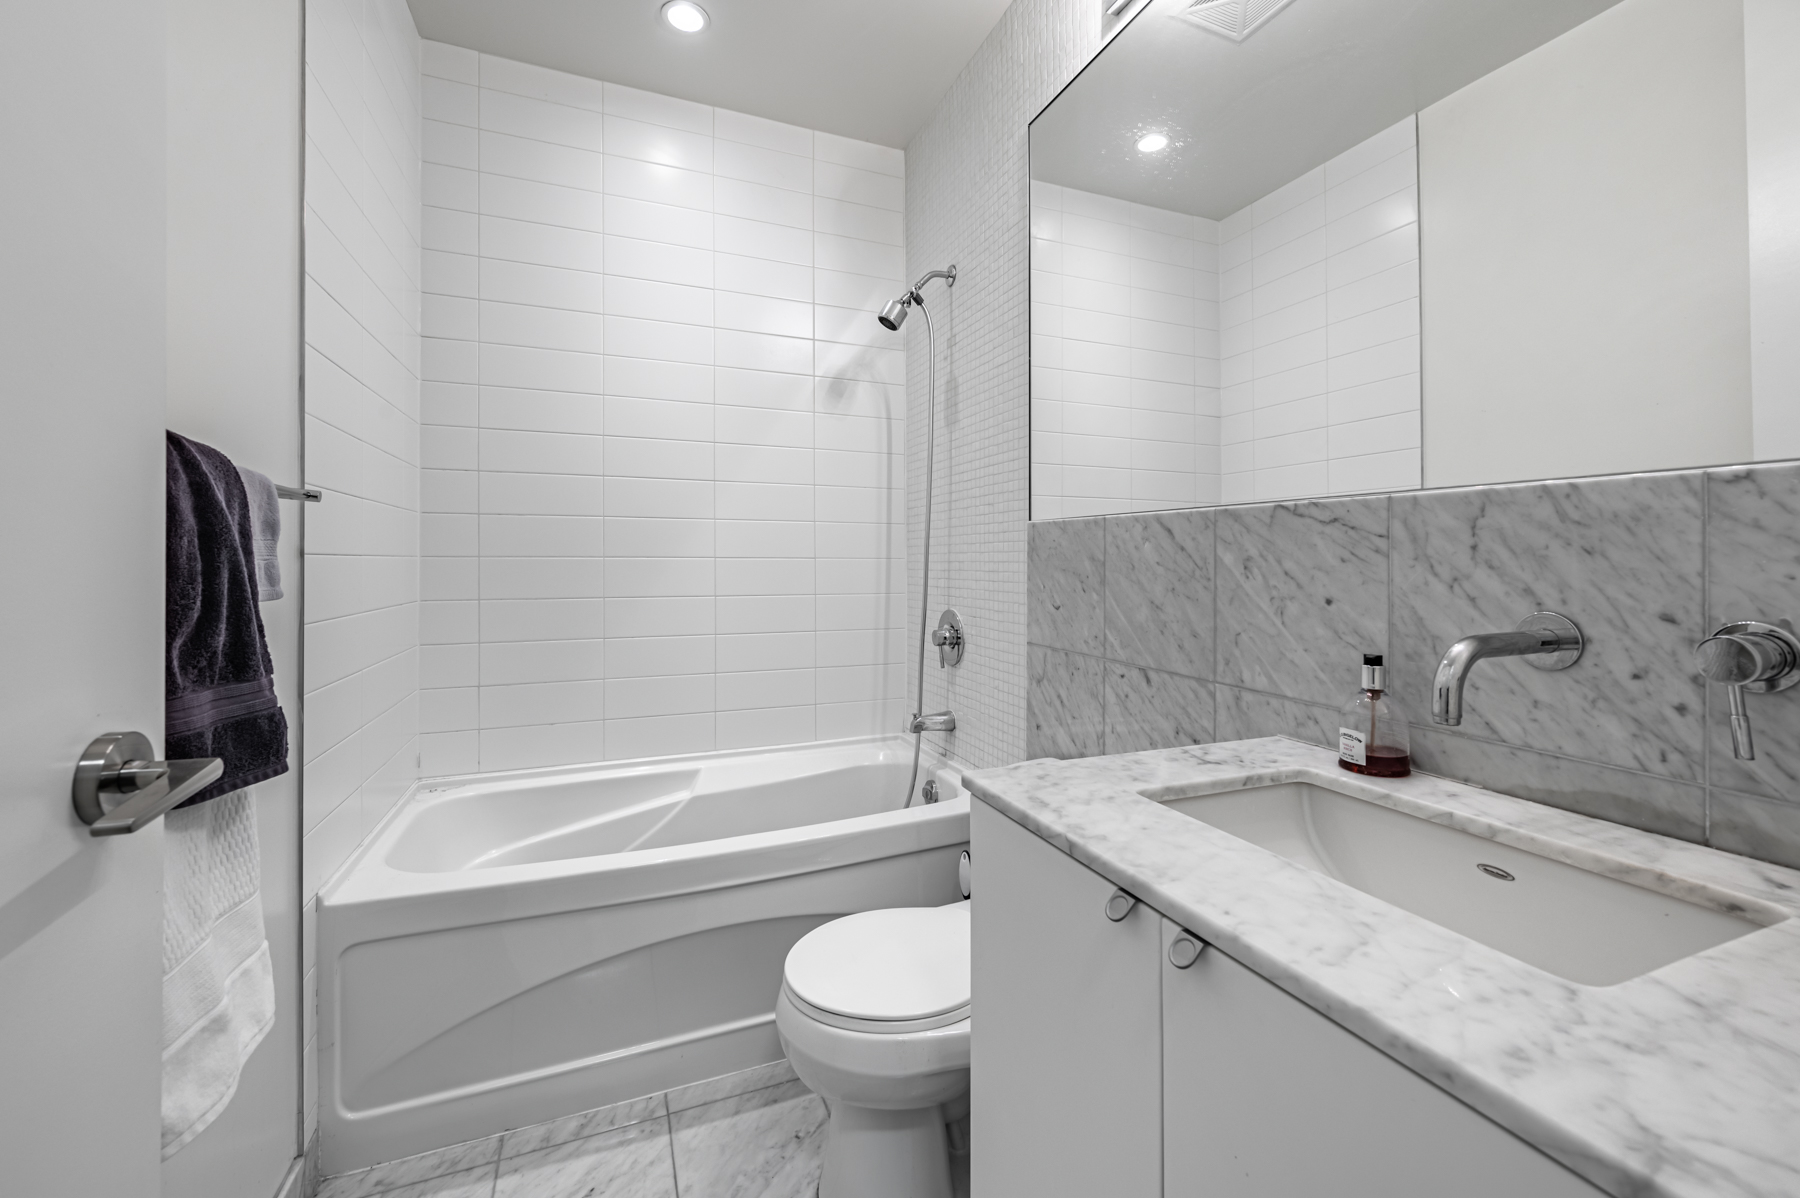 Ensuite bath with gray walls, floors, counters - 380 Macpherson Ave # 517.